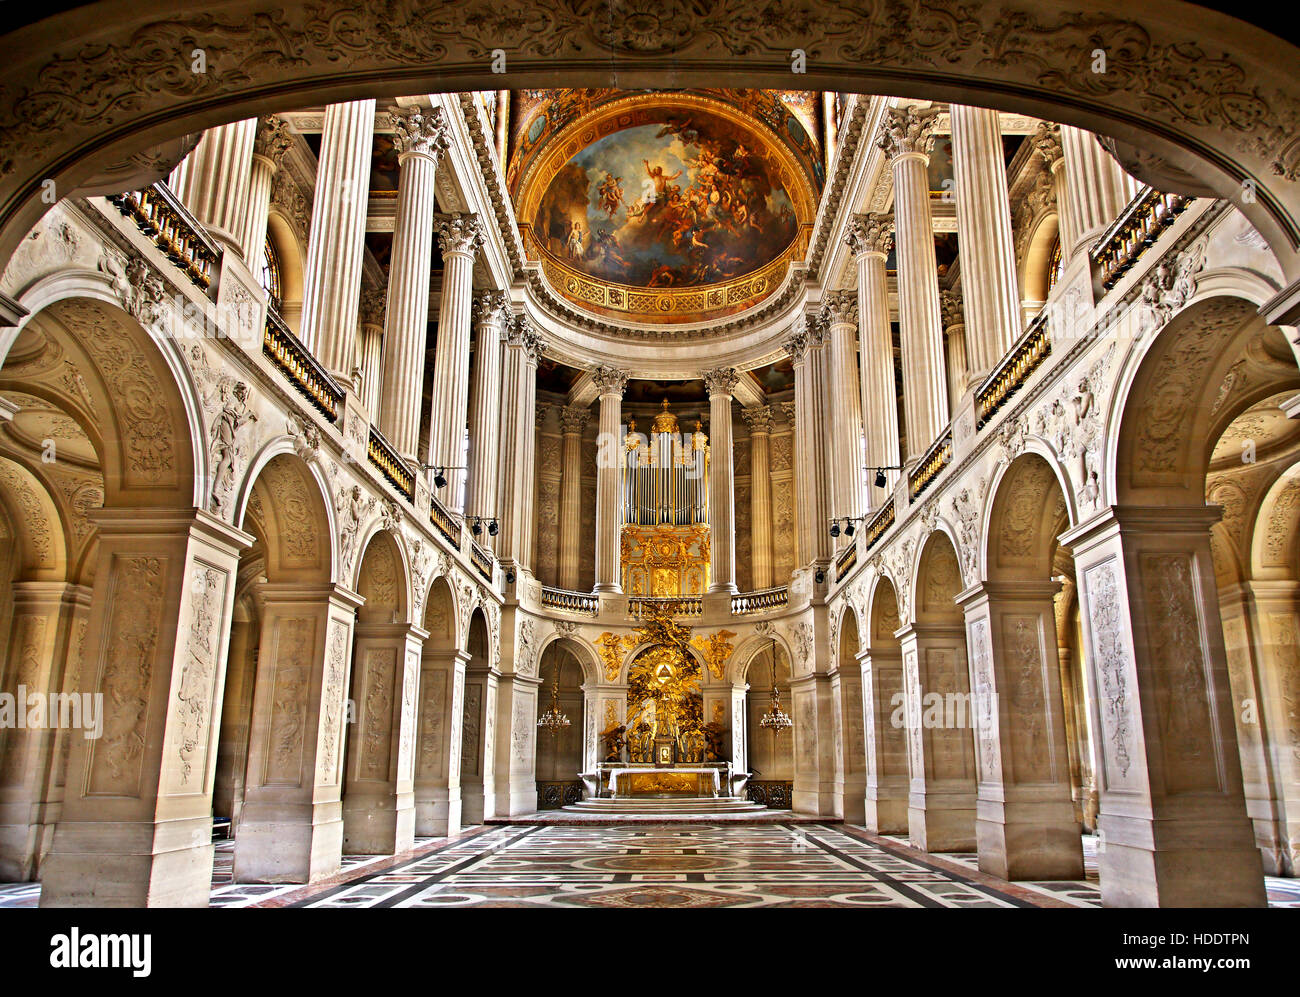 Arcade in  the Palace of Versailles, France. - Stock Image